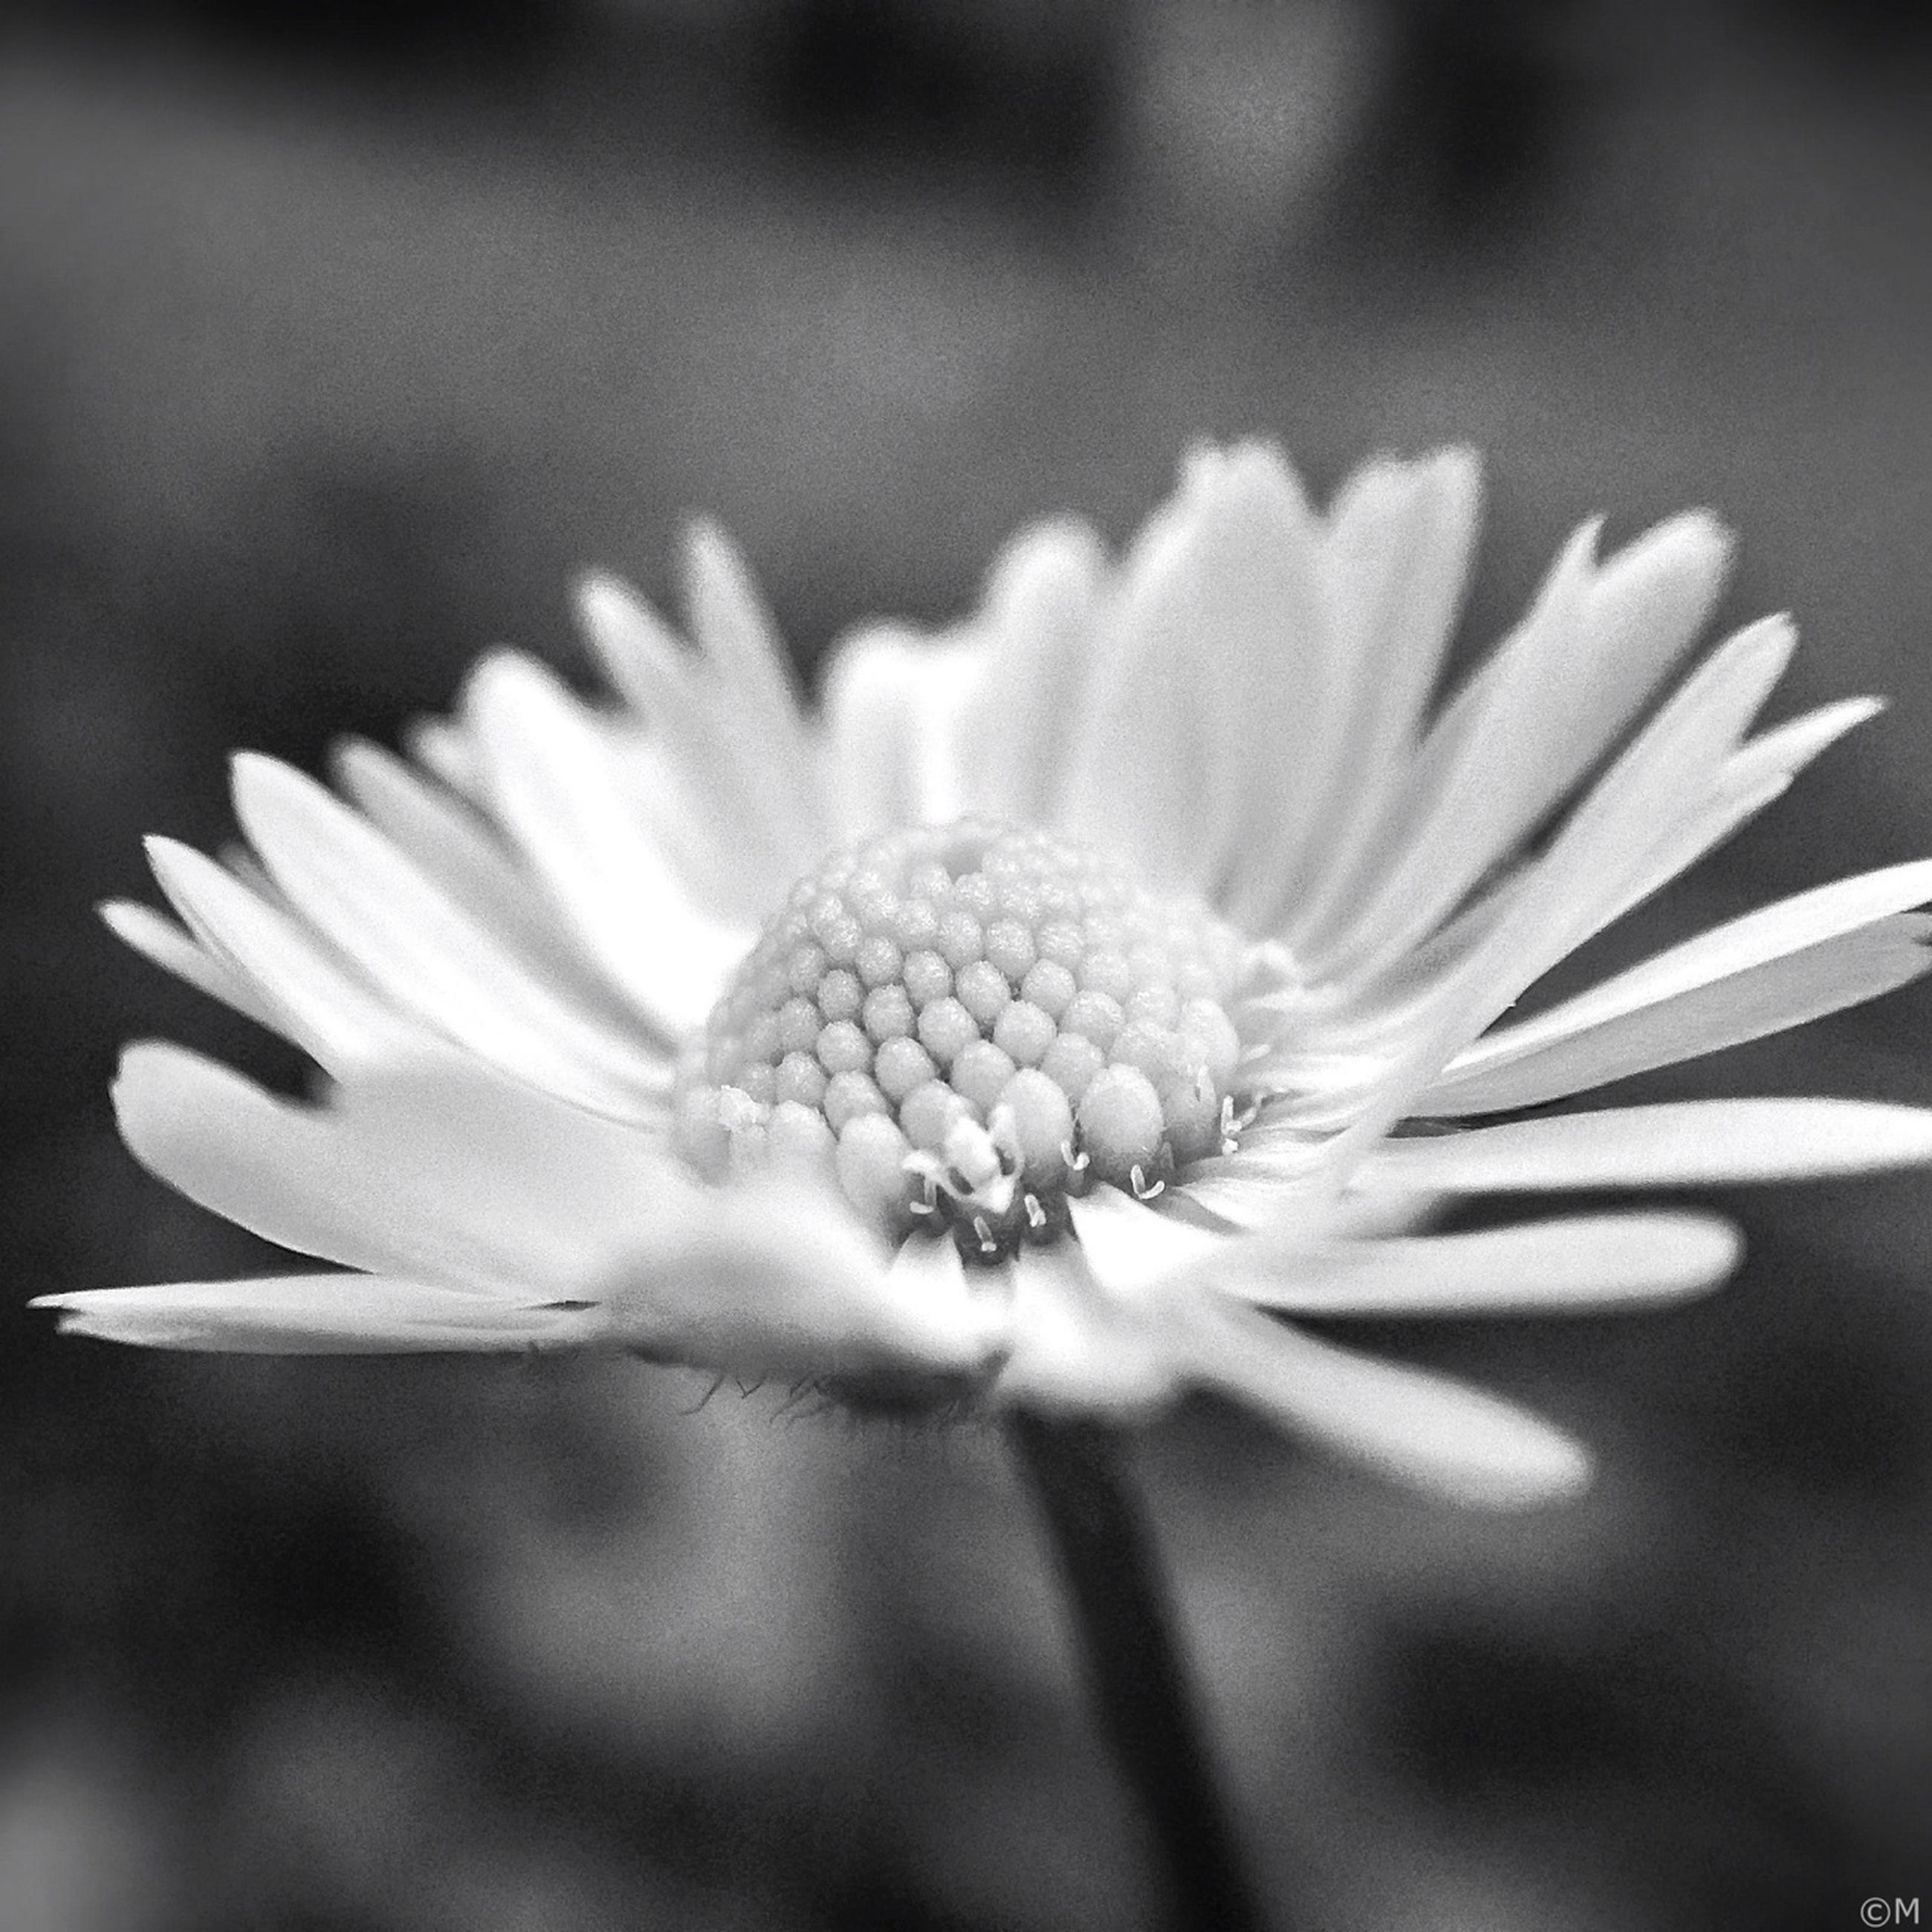 flower, freshness, petal, flower head, fragility, growth, close-up, beauty in nature, single flower, pollen, nature, blooming, focus on foreground, in bloom, plant, selective focus, daisy, stamen, white color, blossom